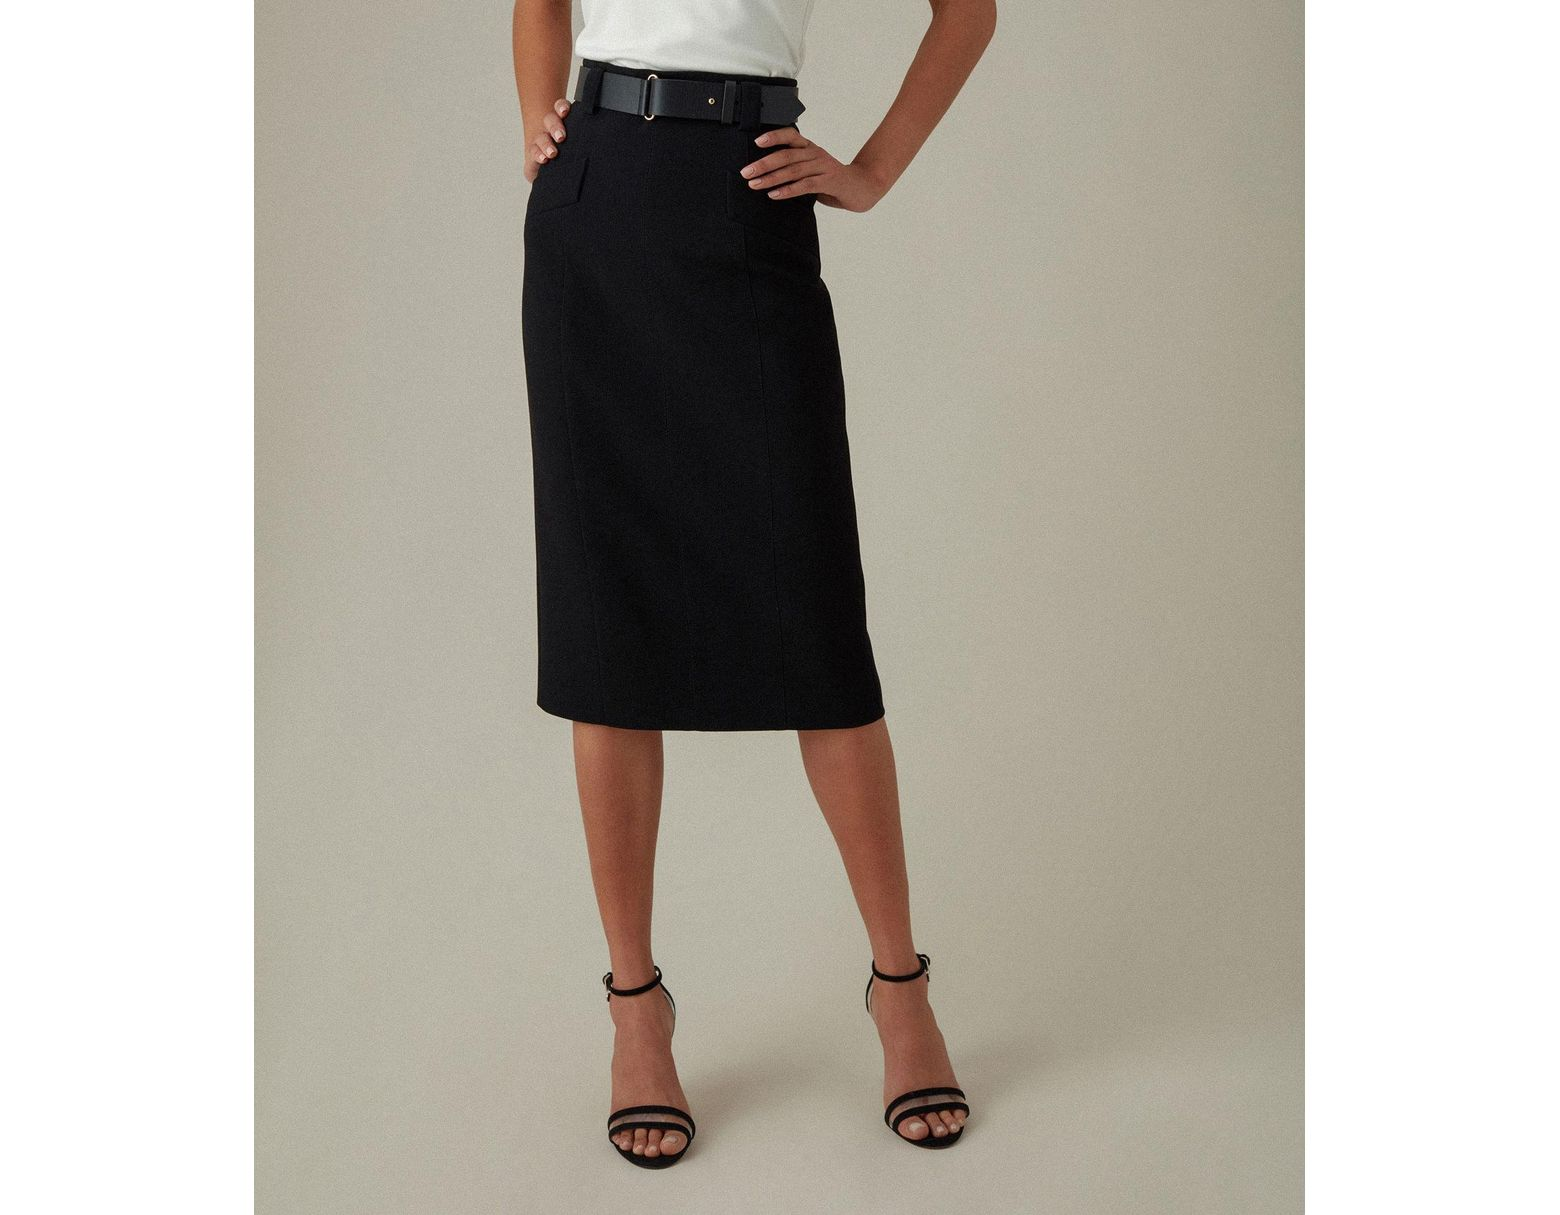 51bb0b2dde Karen Millen Leather Belt Pencil Skirt in Black - Save 17% - Lyst